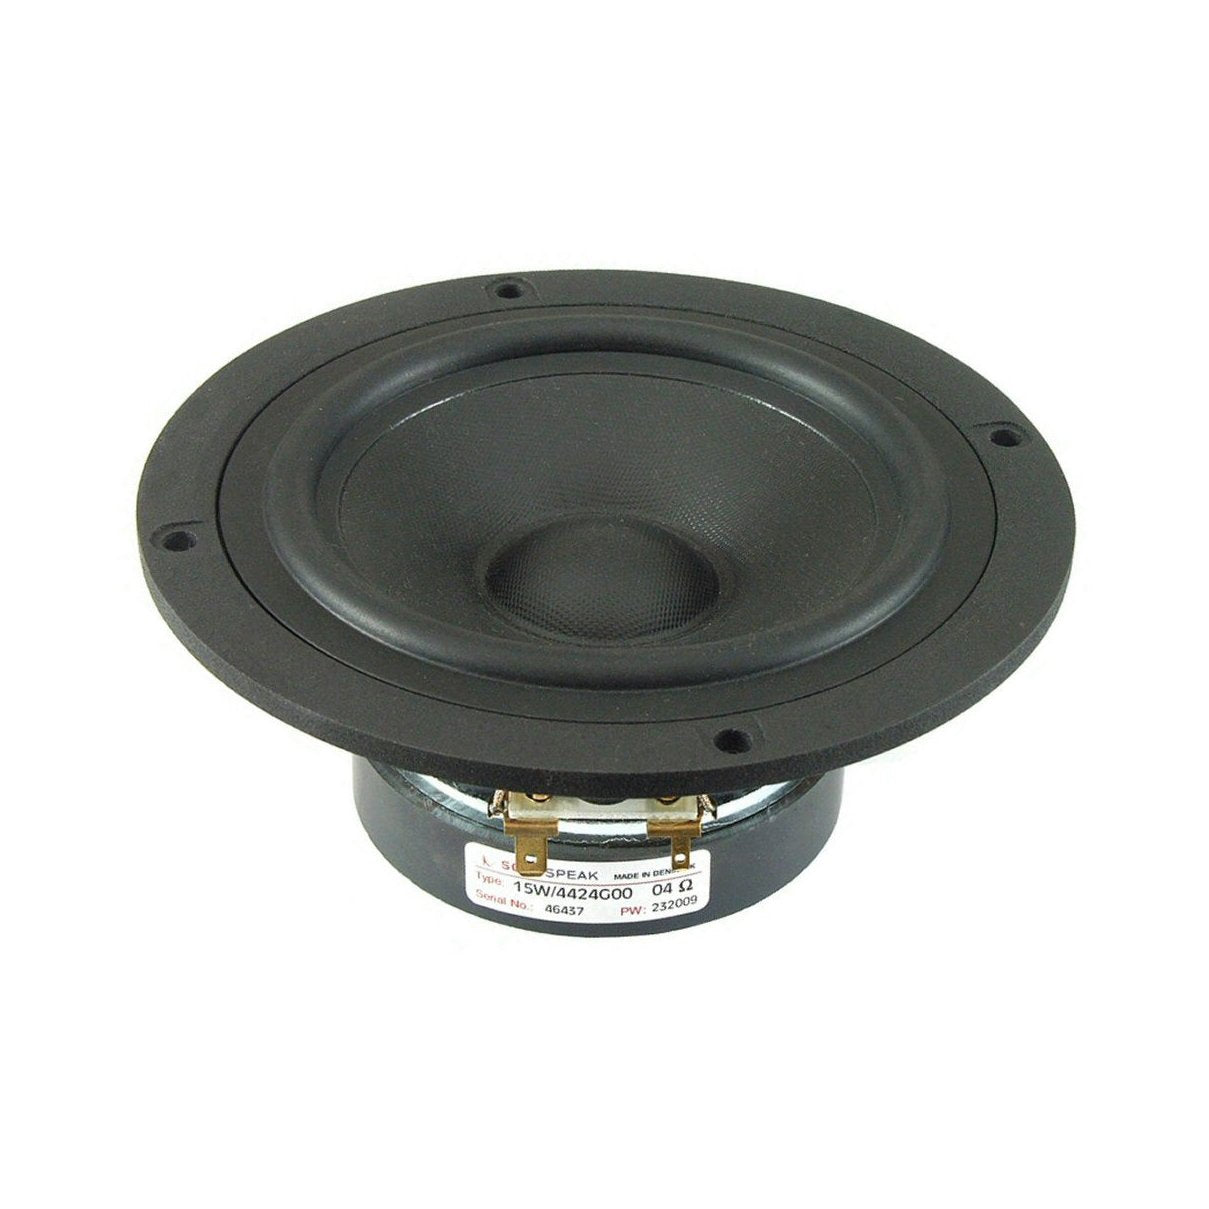 Scanspeak Discovery 15W/4424G00 Midwoofer - Willys-Hifi Ltd